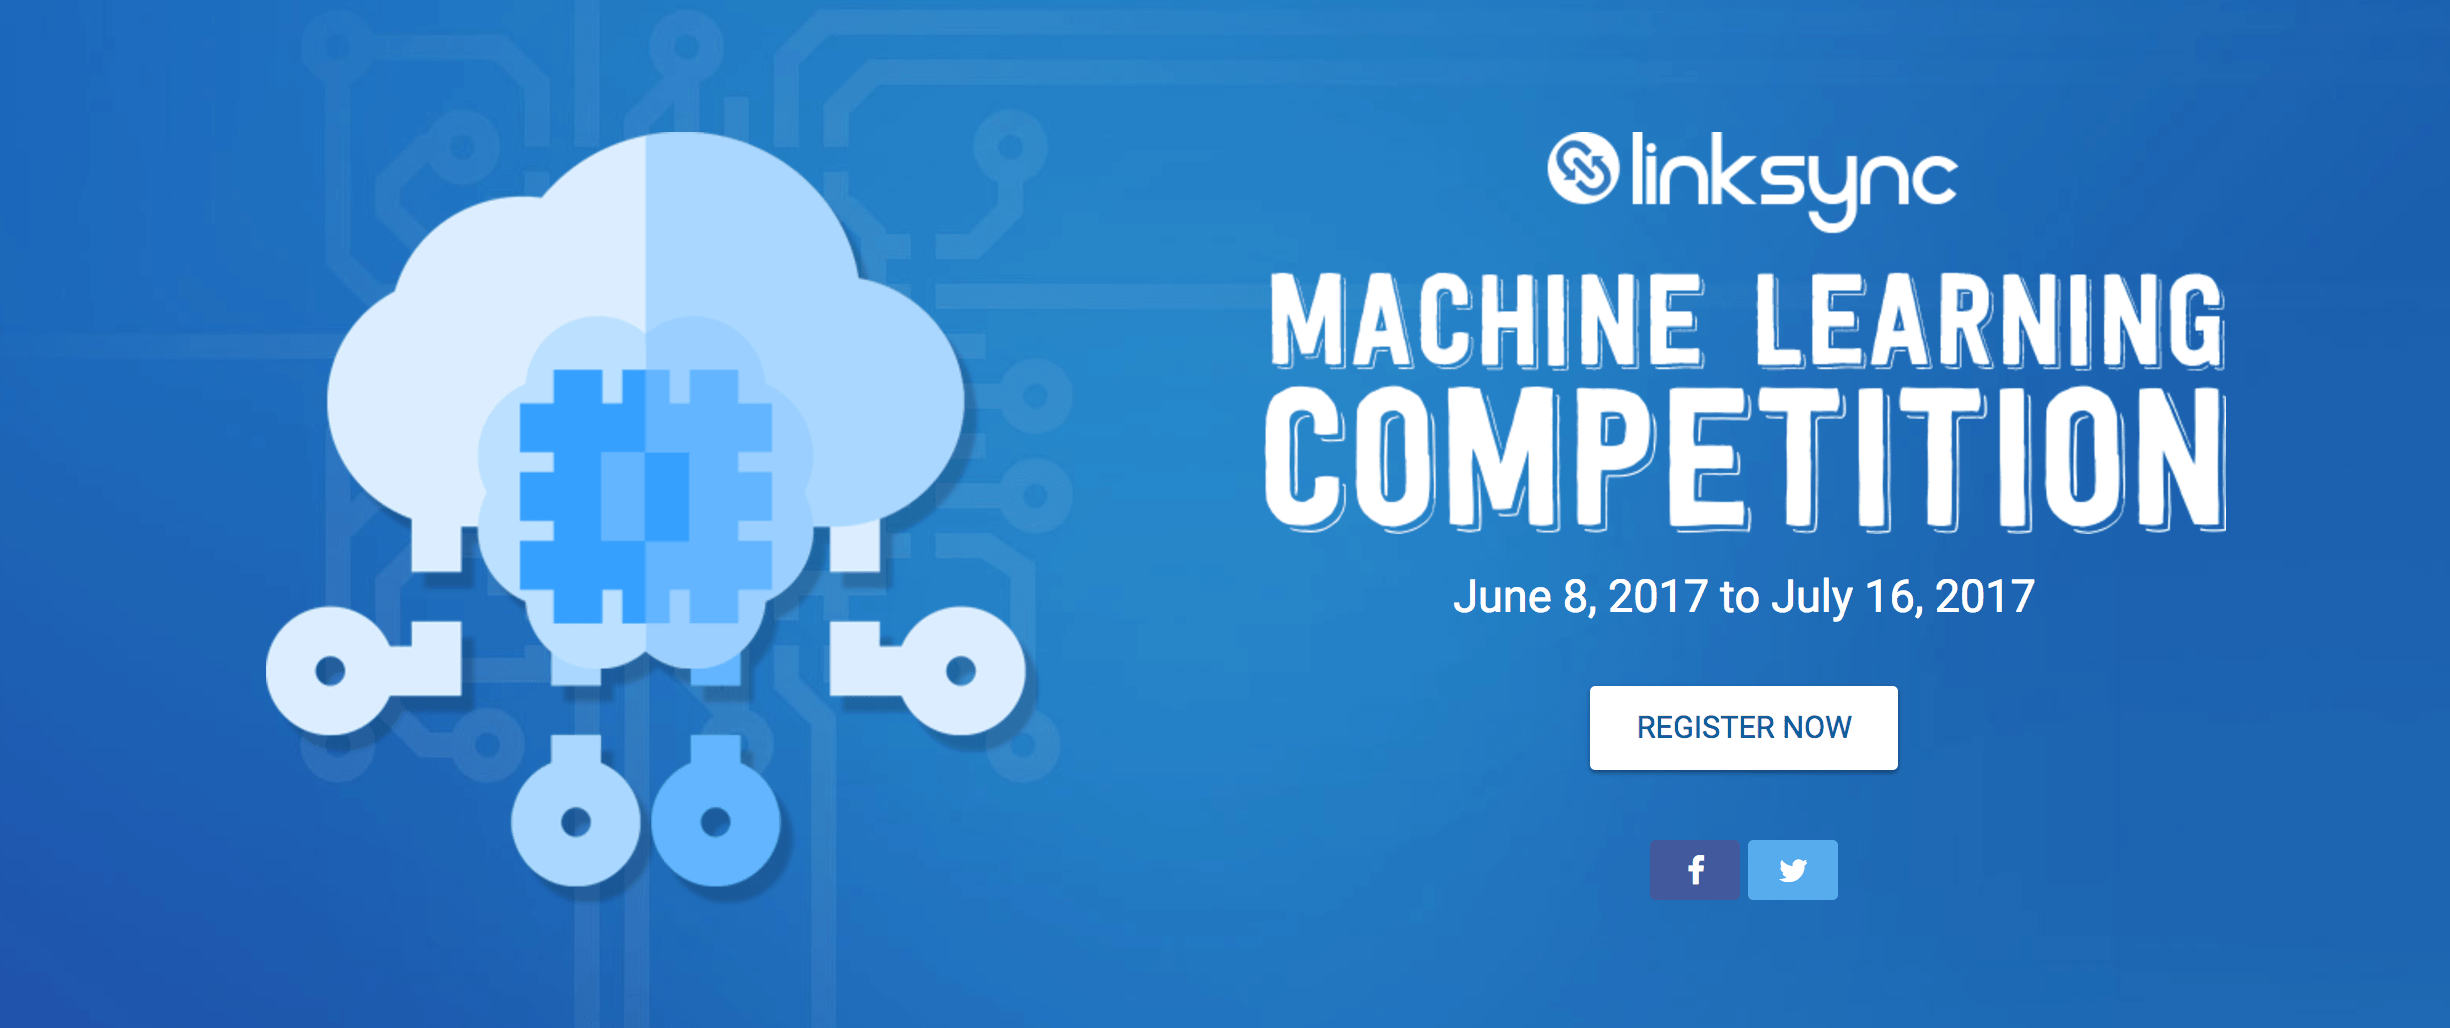 machine learning contest